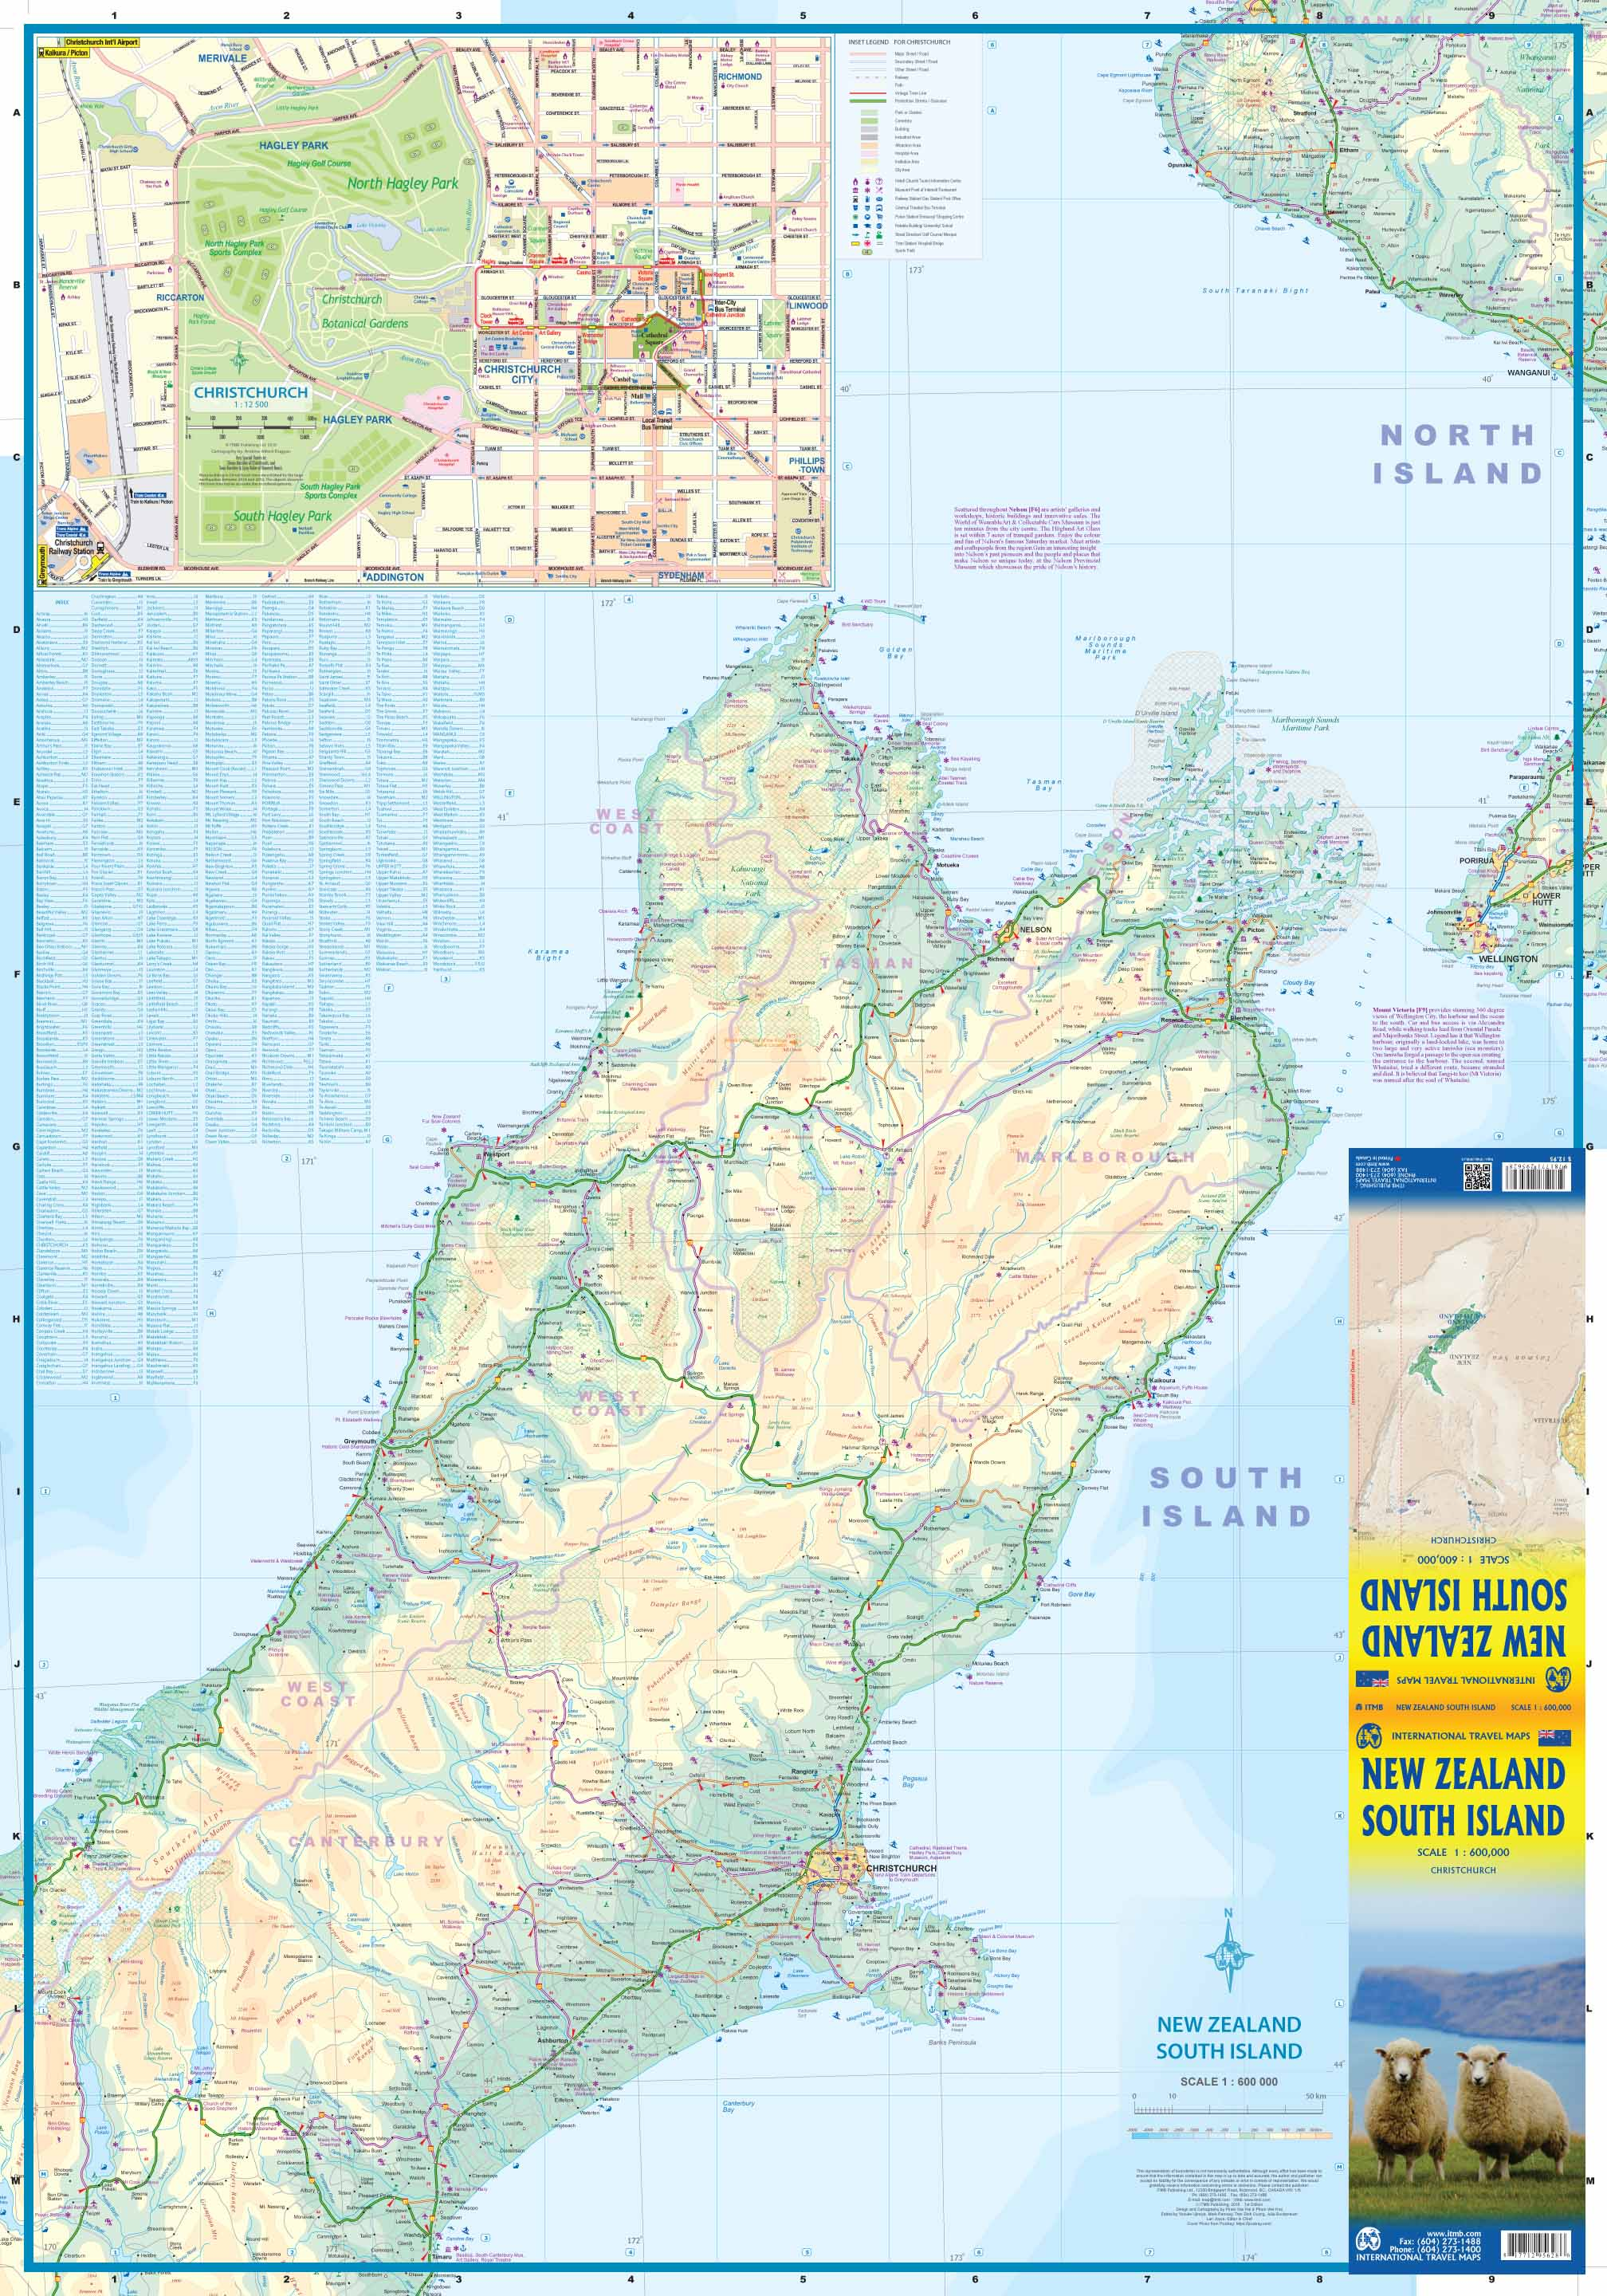 Road Map Of New Zealand South Island.Maps For Travel City Maps Road Maps Guides Globes Topographic Maps